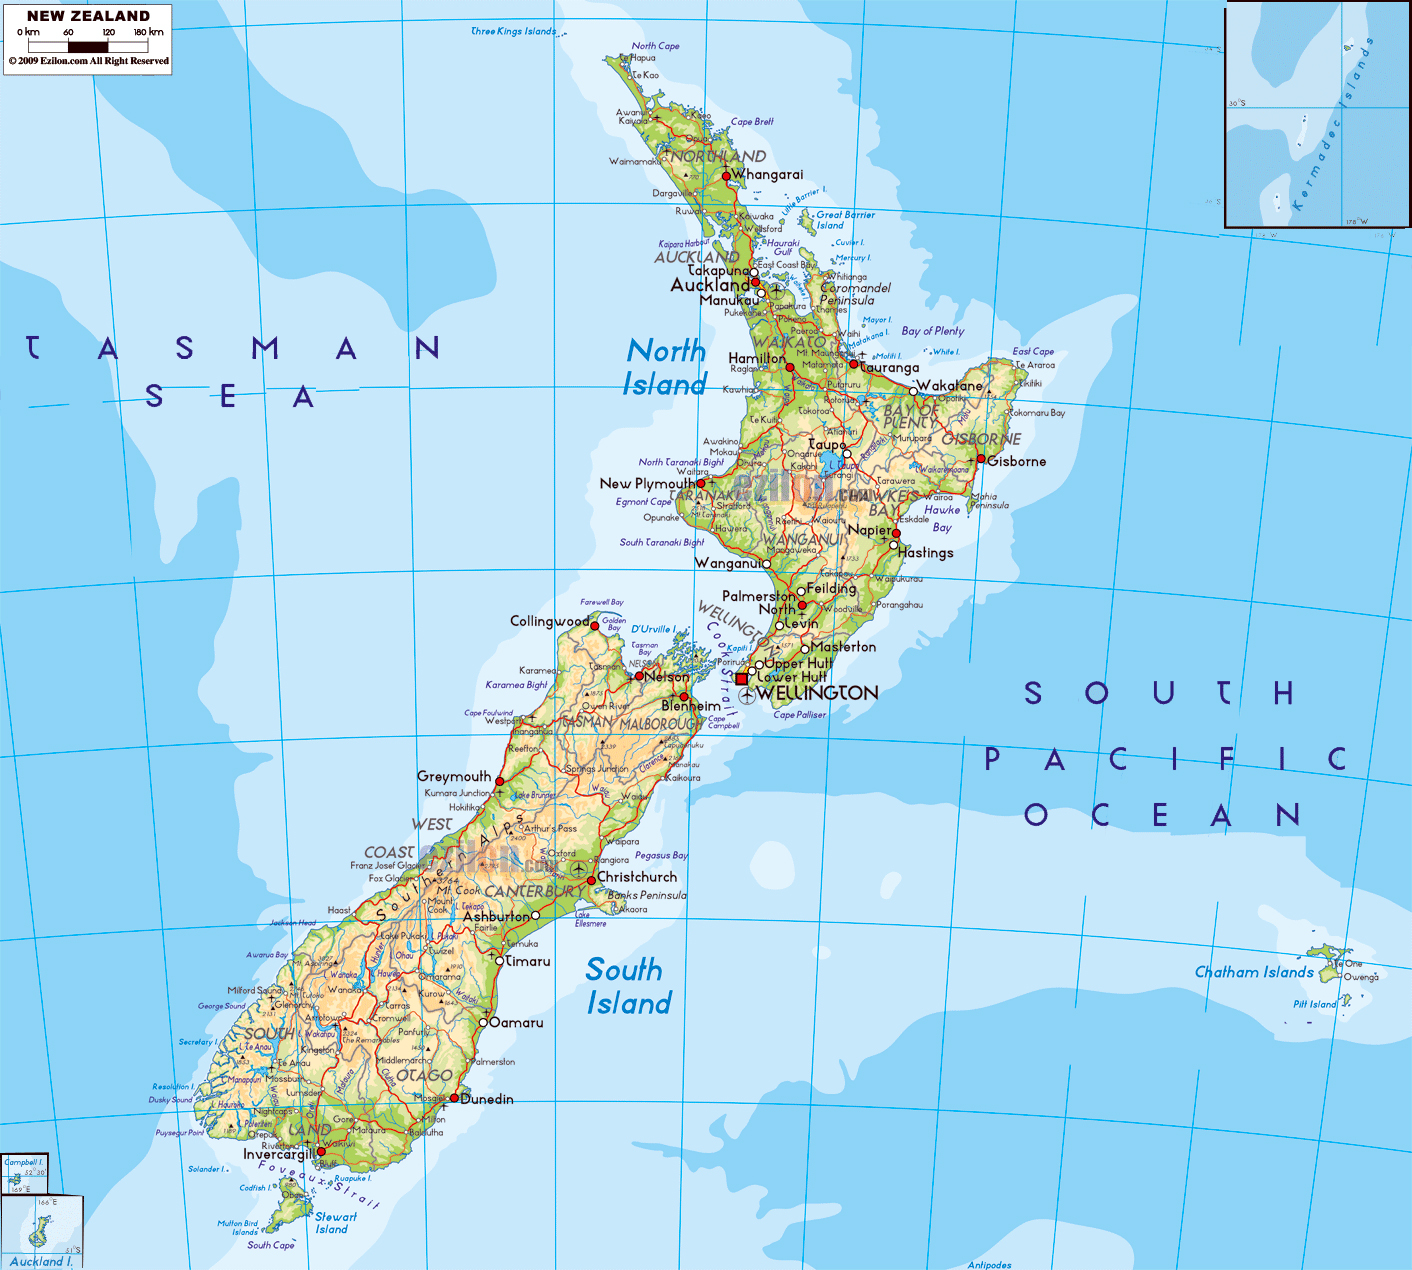 Map Of New Zealand With Cities.Large Physical Map Of New Zealand With Roads Cities And Airports